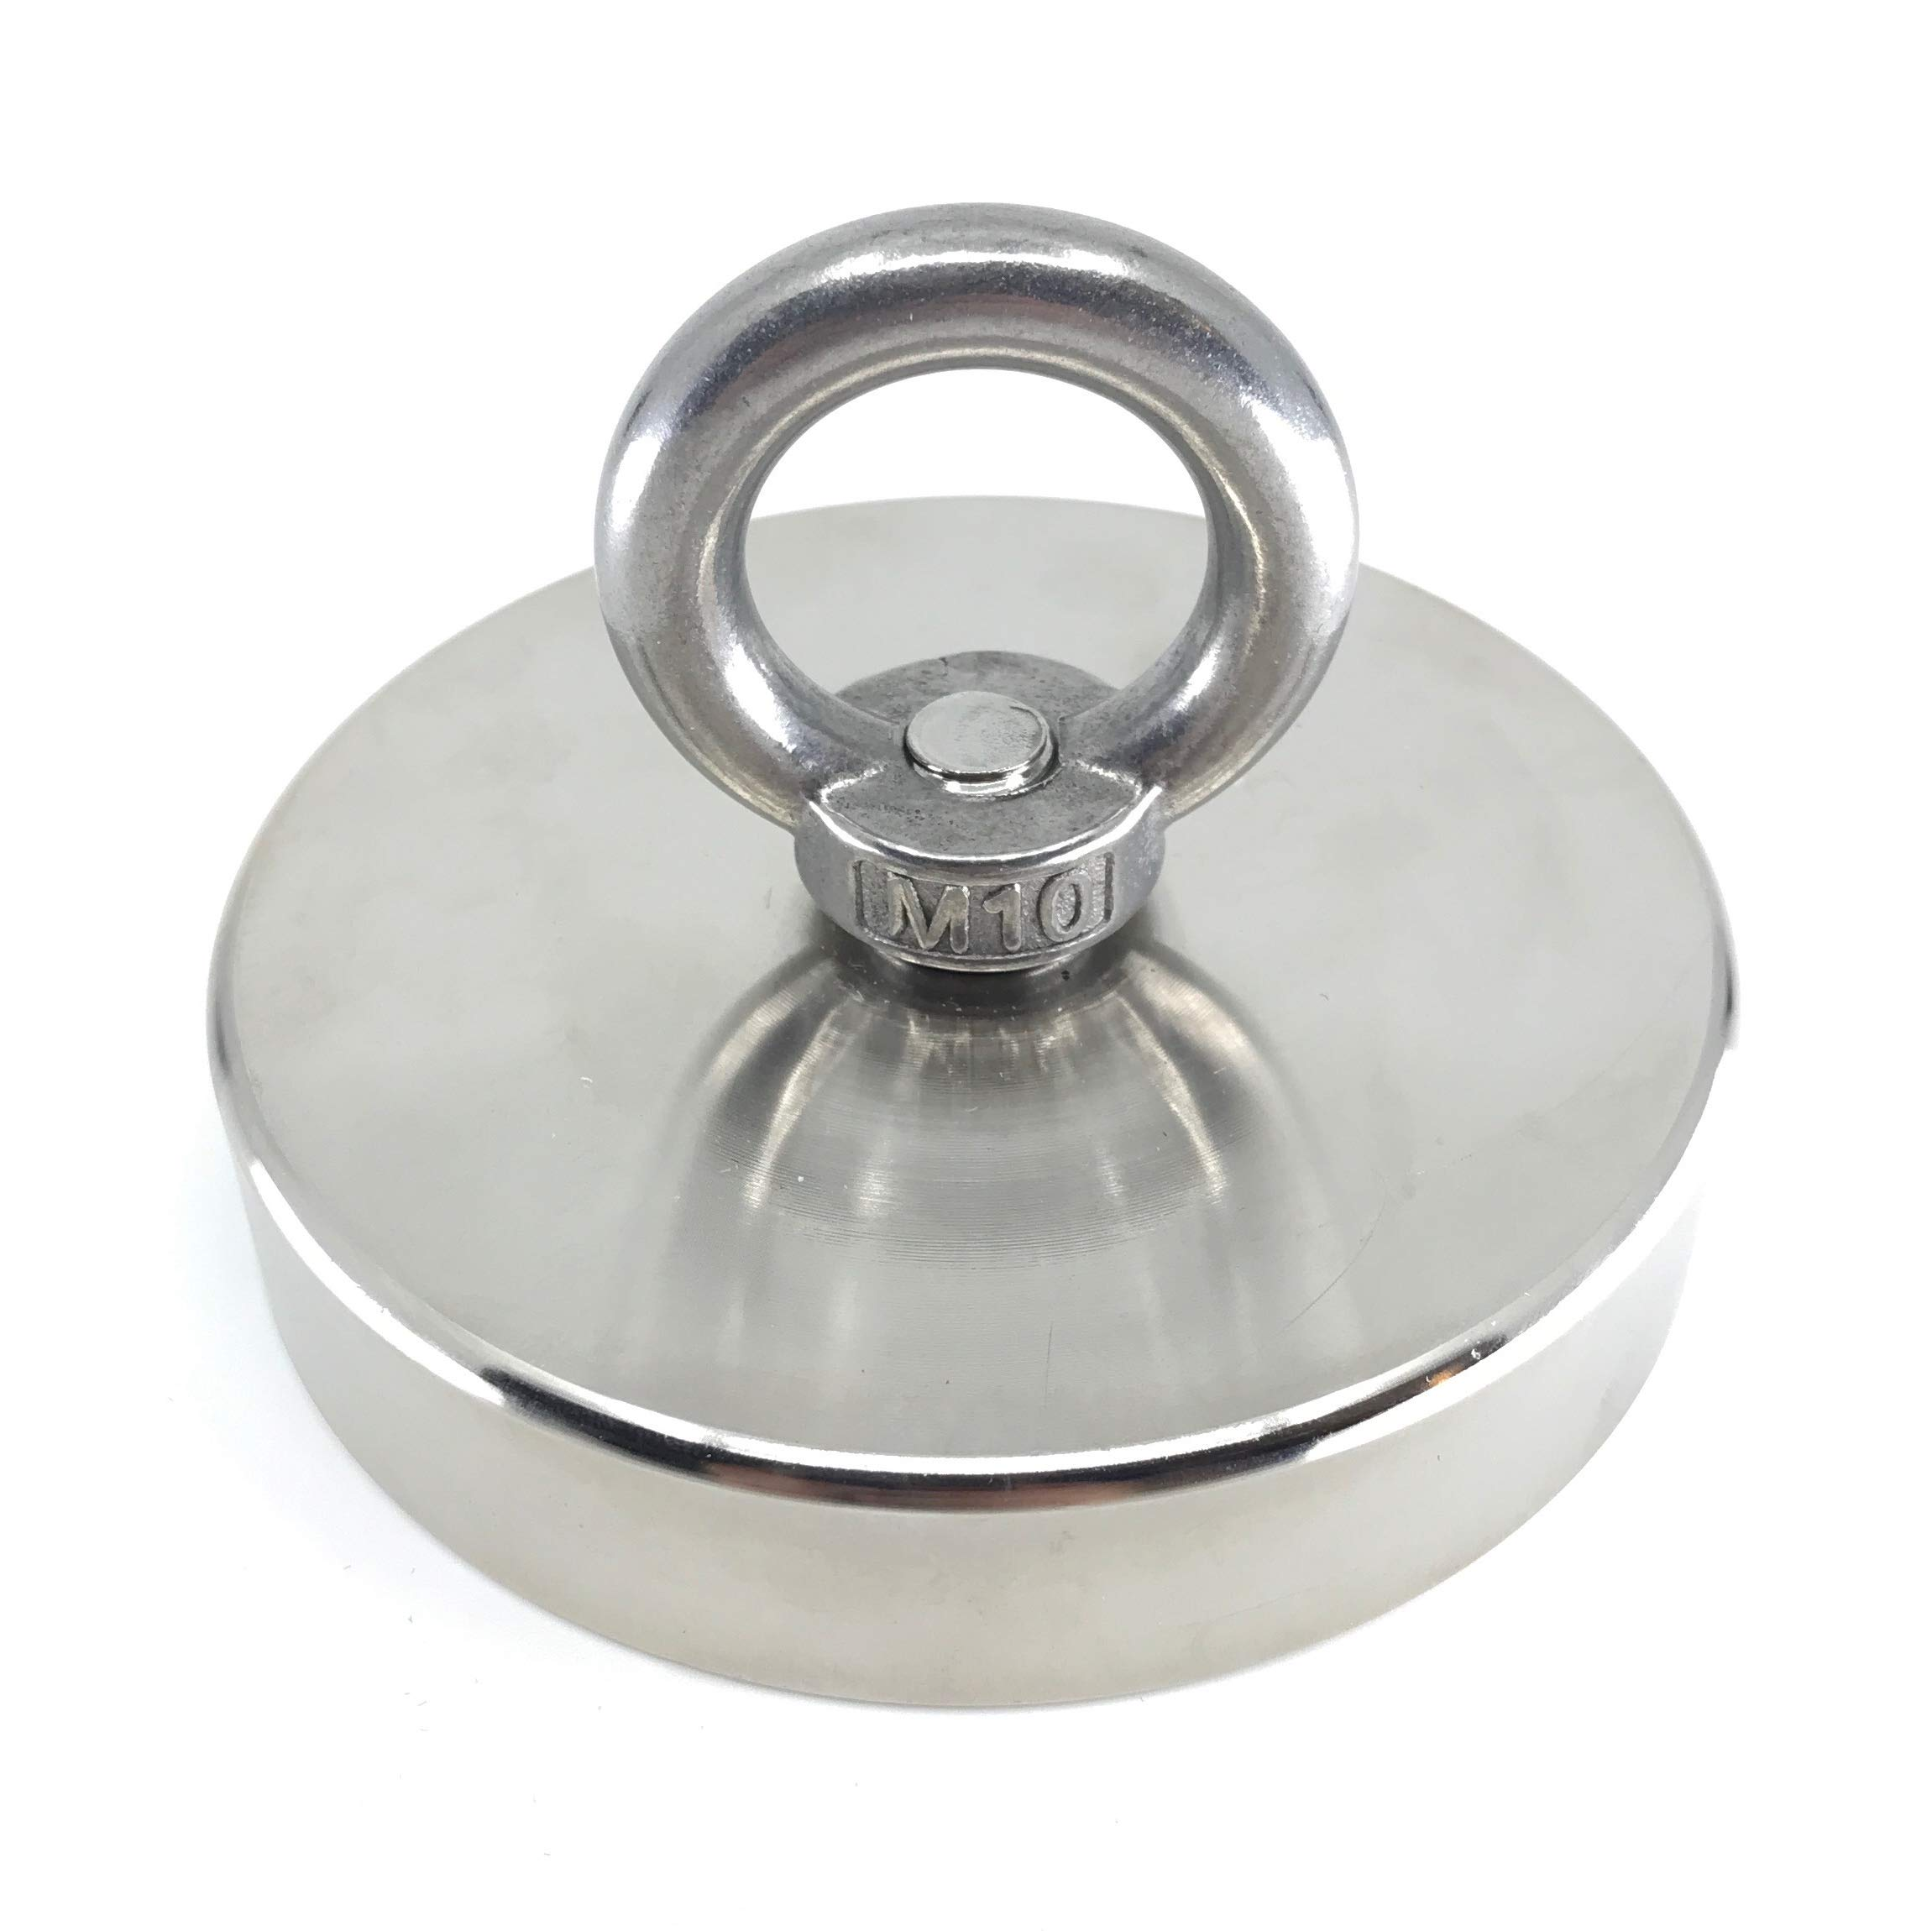 1000 LBS (452kg) Strong Fishing Magnet by Savage Magnets - Brute Strength for Treasure Hunting Retrieving and Lifting from River and Salvage Recovery- Heavy Duty Pulling Power Eyebolt - Neodymium